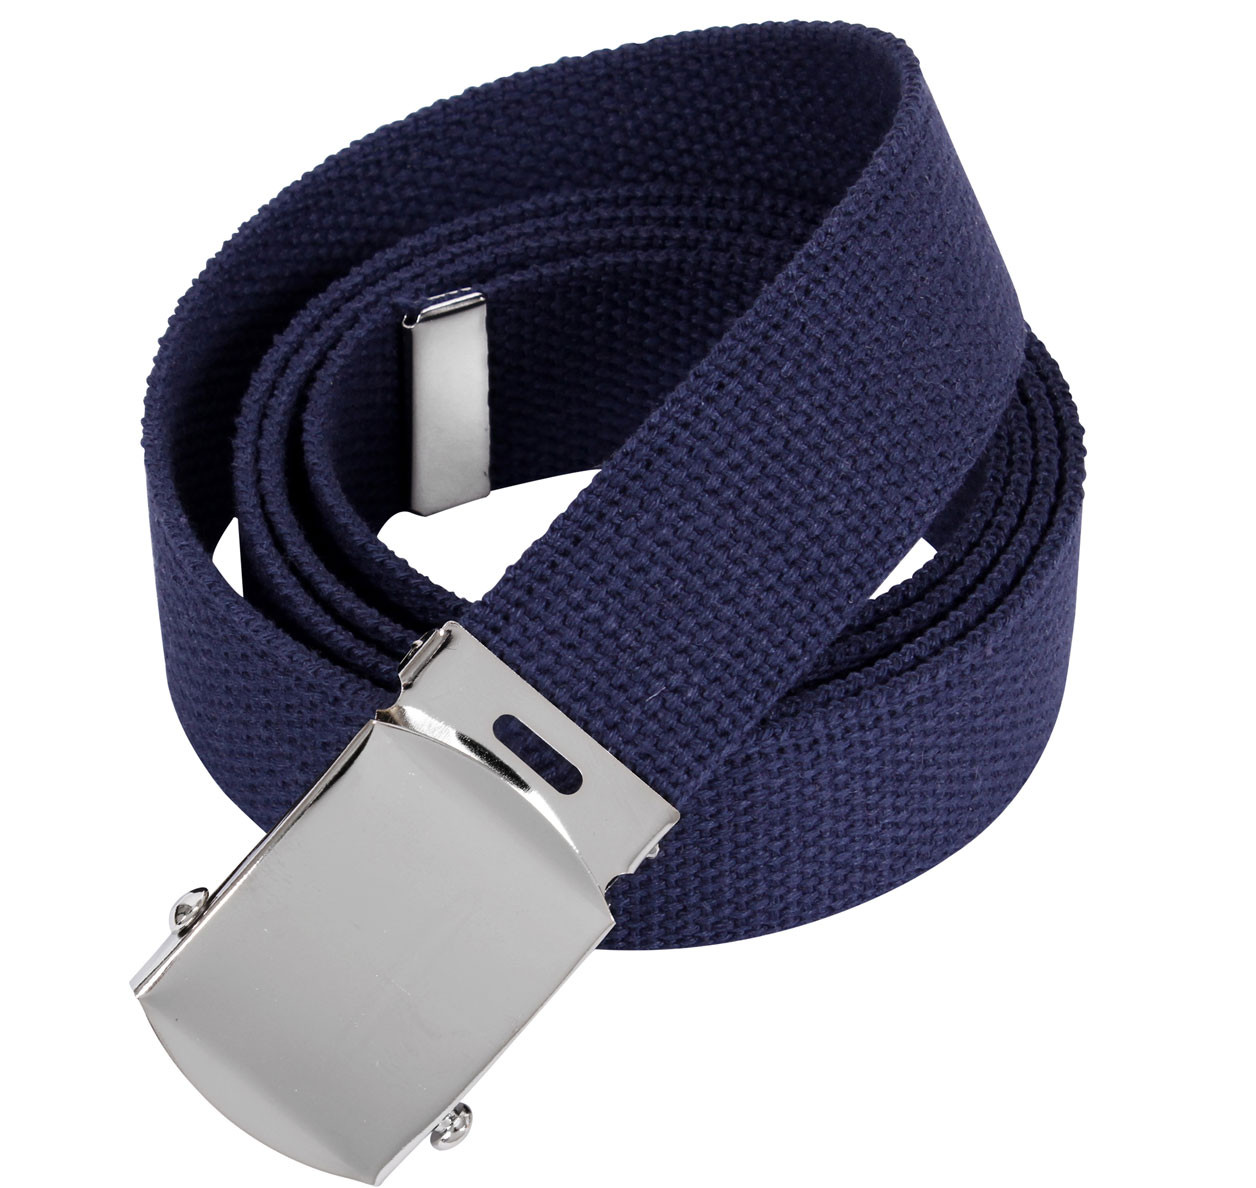 Navy Blue Military Web Belt with Chrome Buckle 4ad1bb74a3e